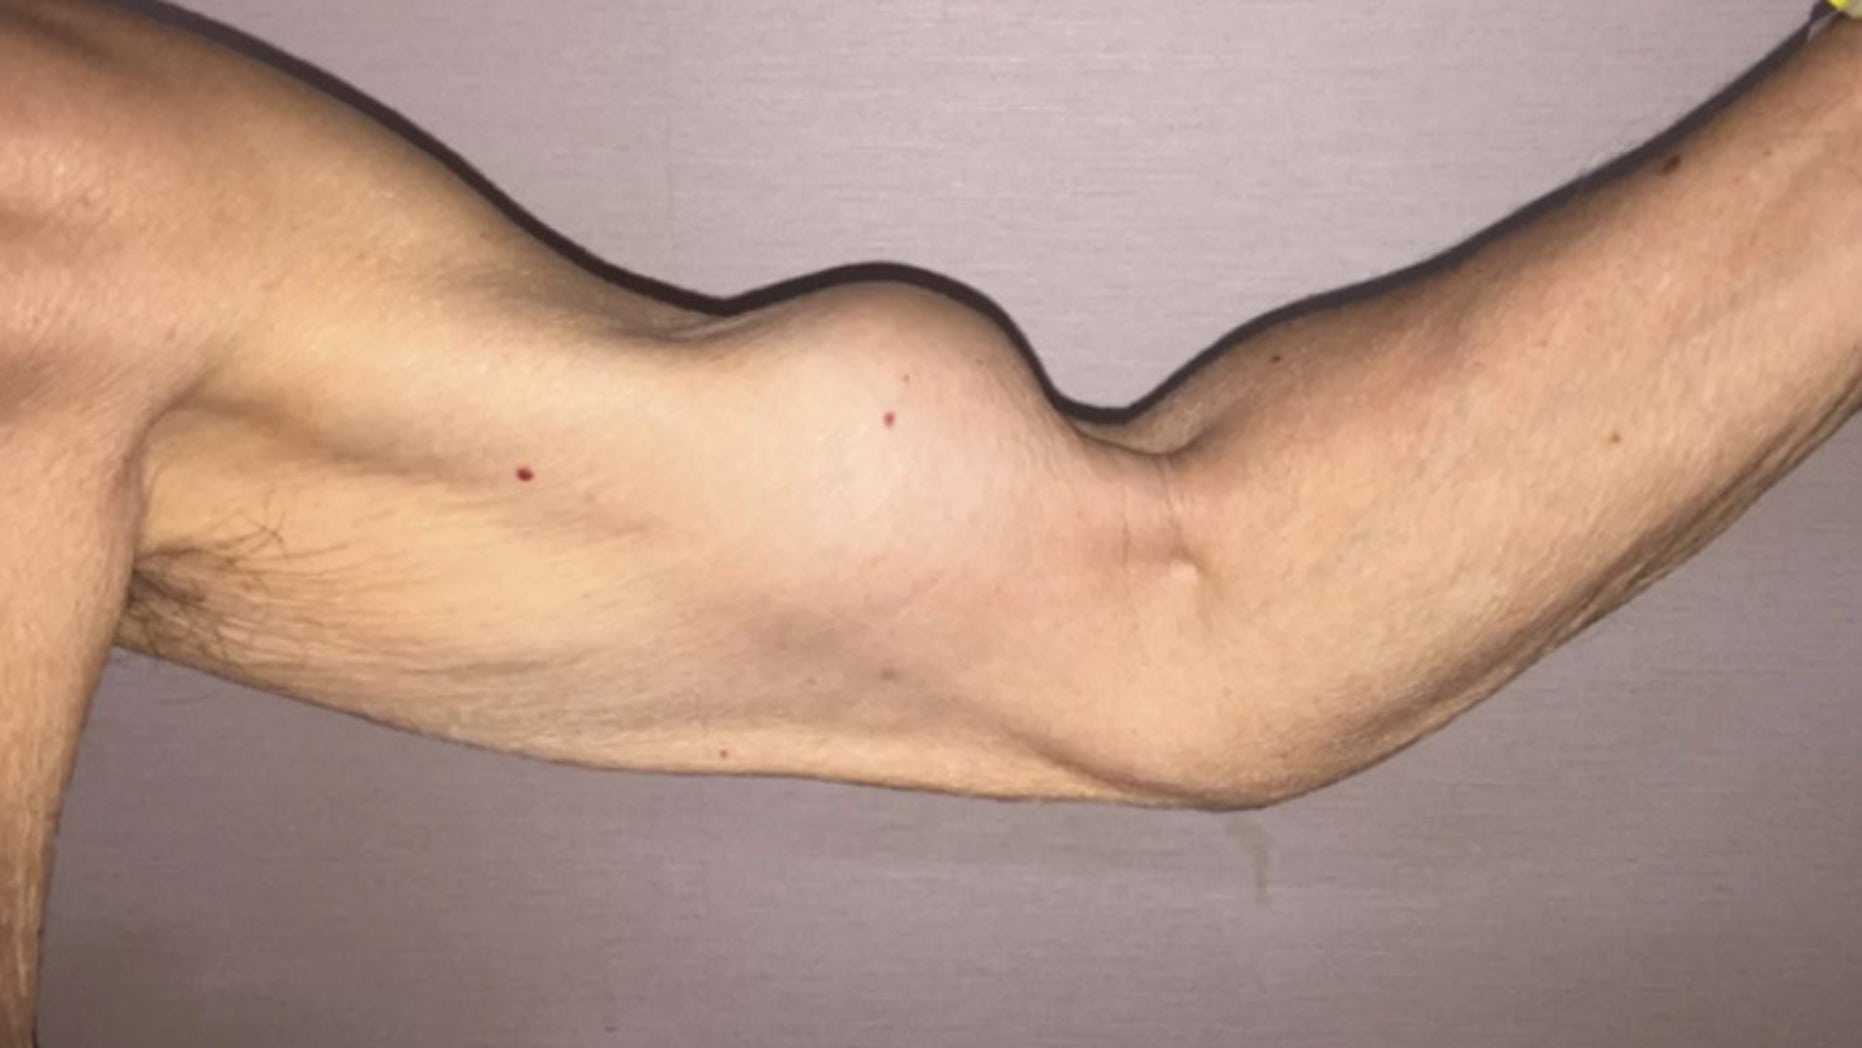 The 79-year-old's injury happened after he lifted an object and immediately felt a sharp pain in his left shoulder,